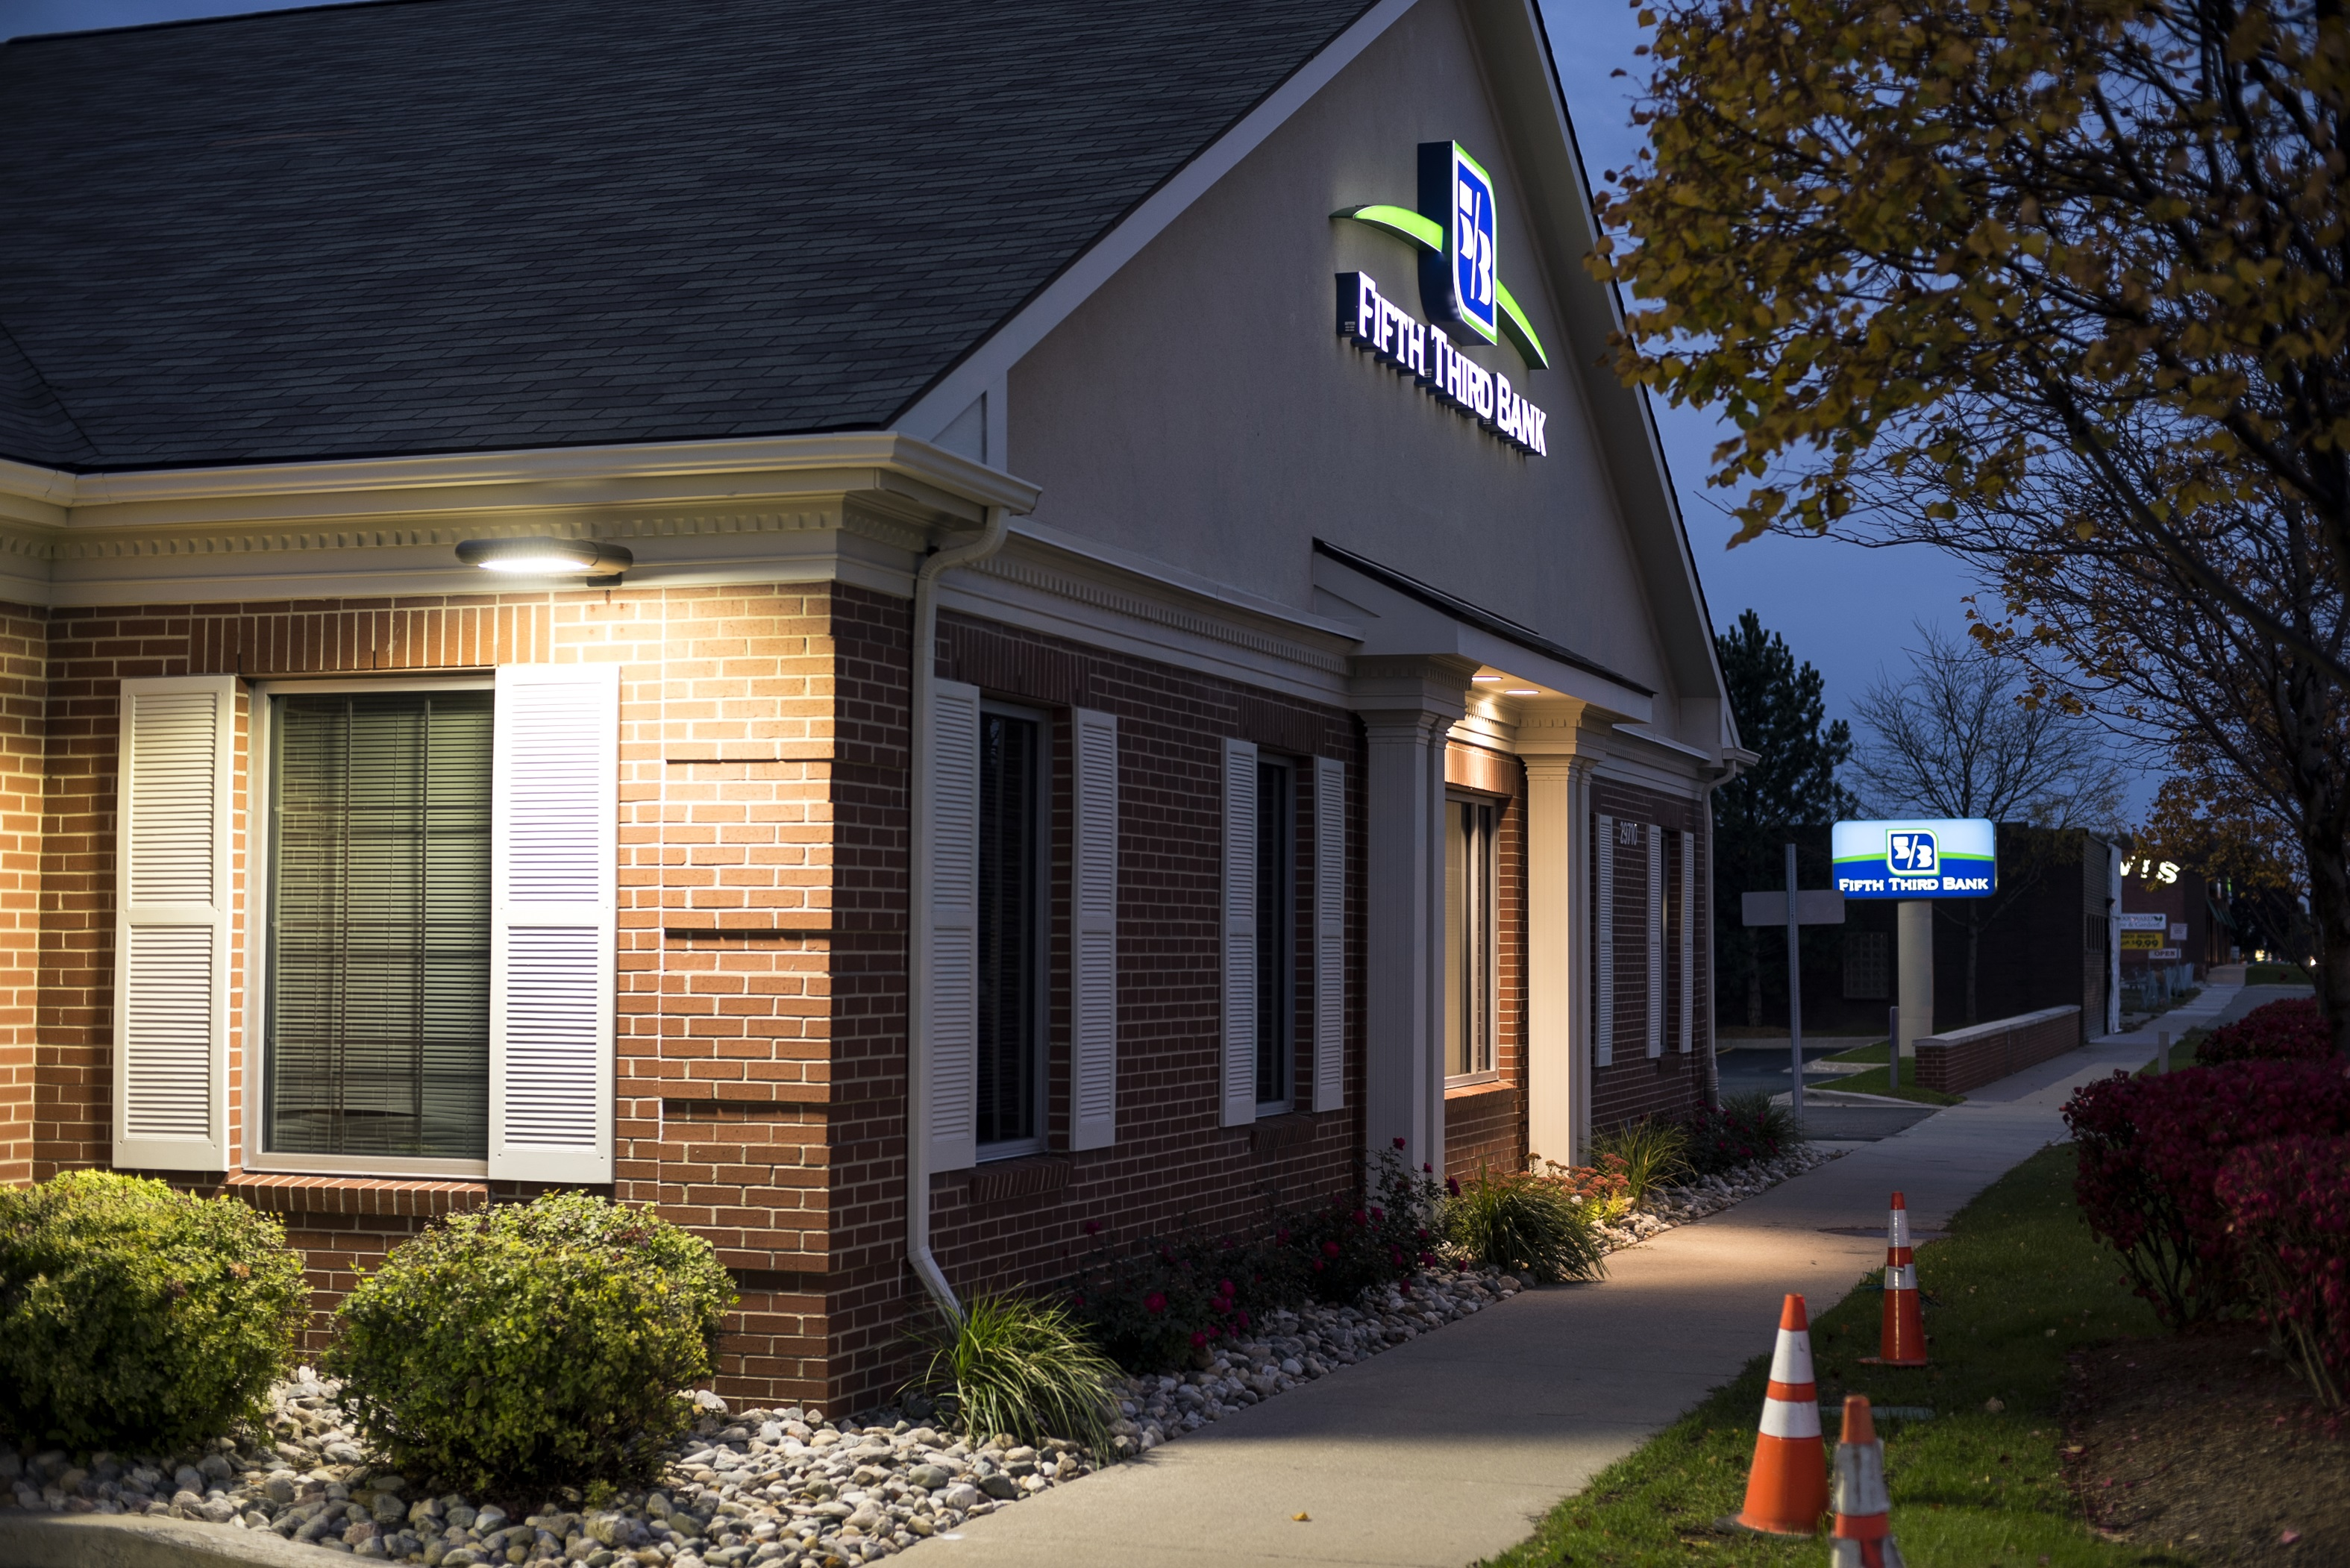 Fifth Third sees a multi-million dollar net profit improvement after upgrading their LED bank lights